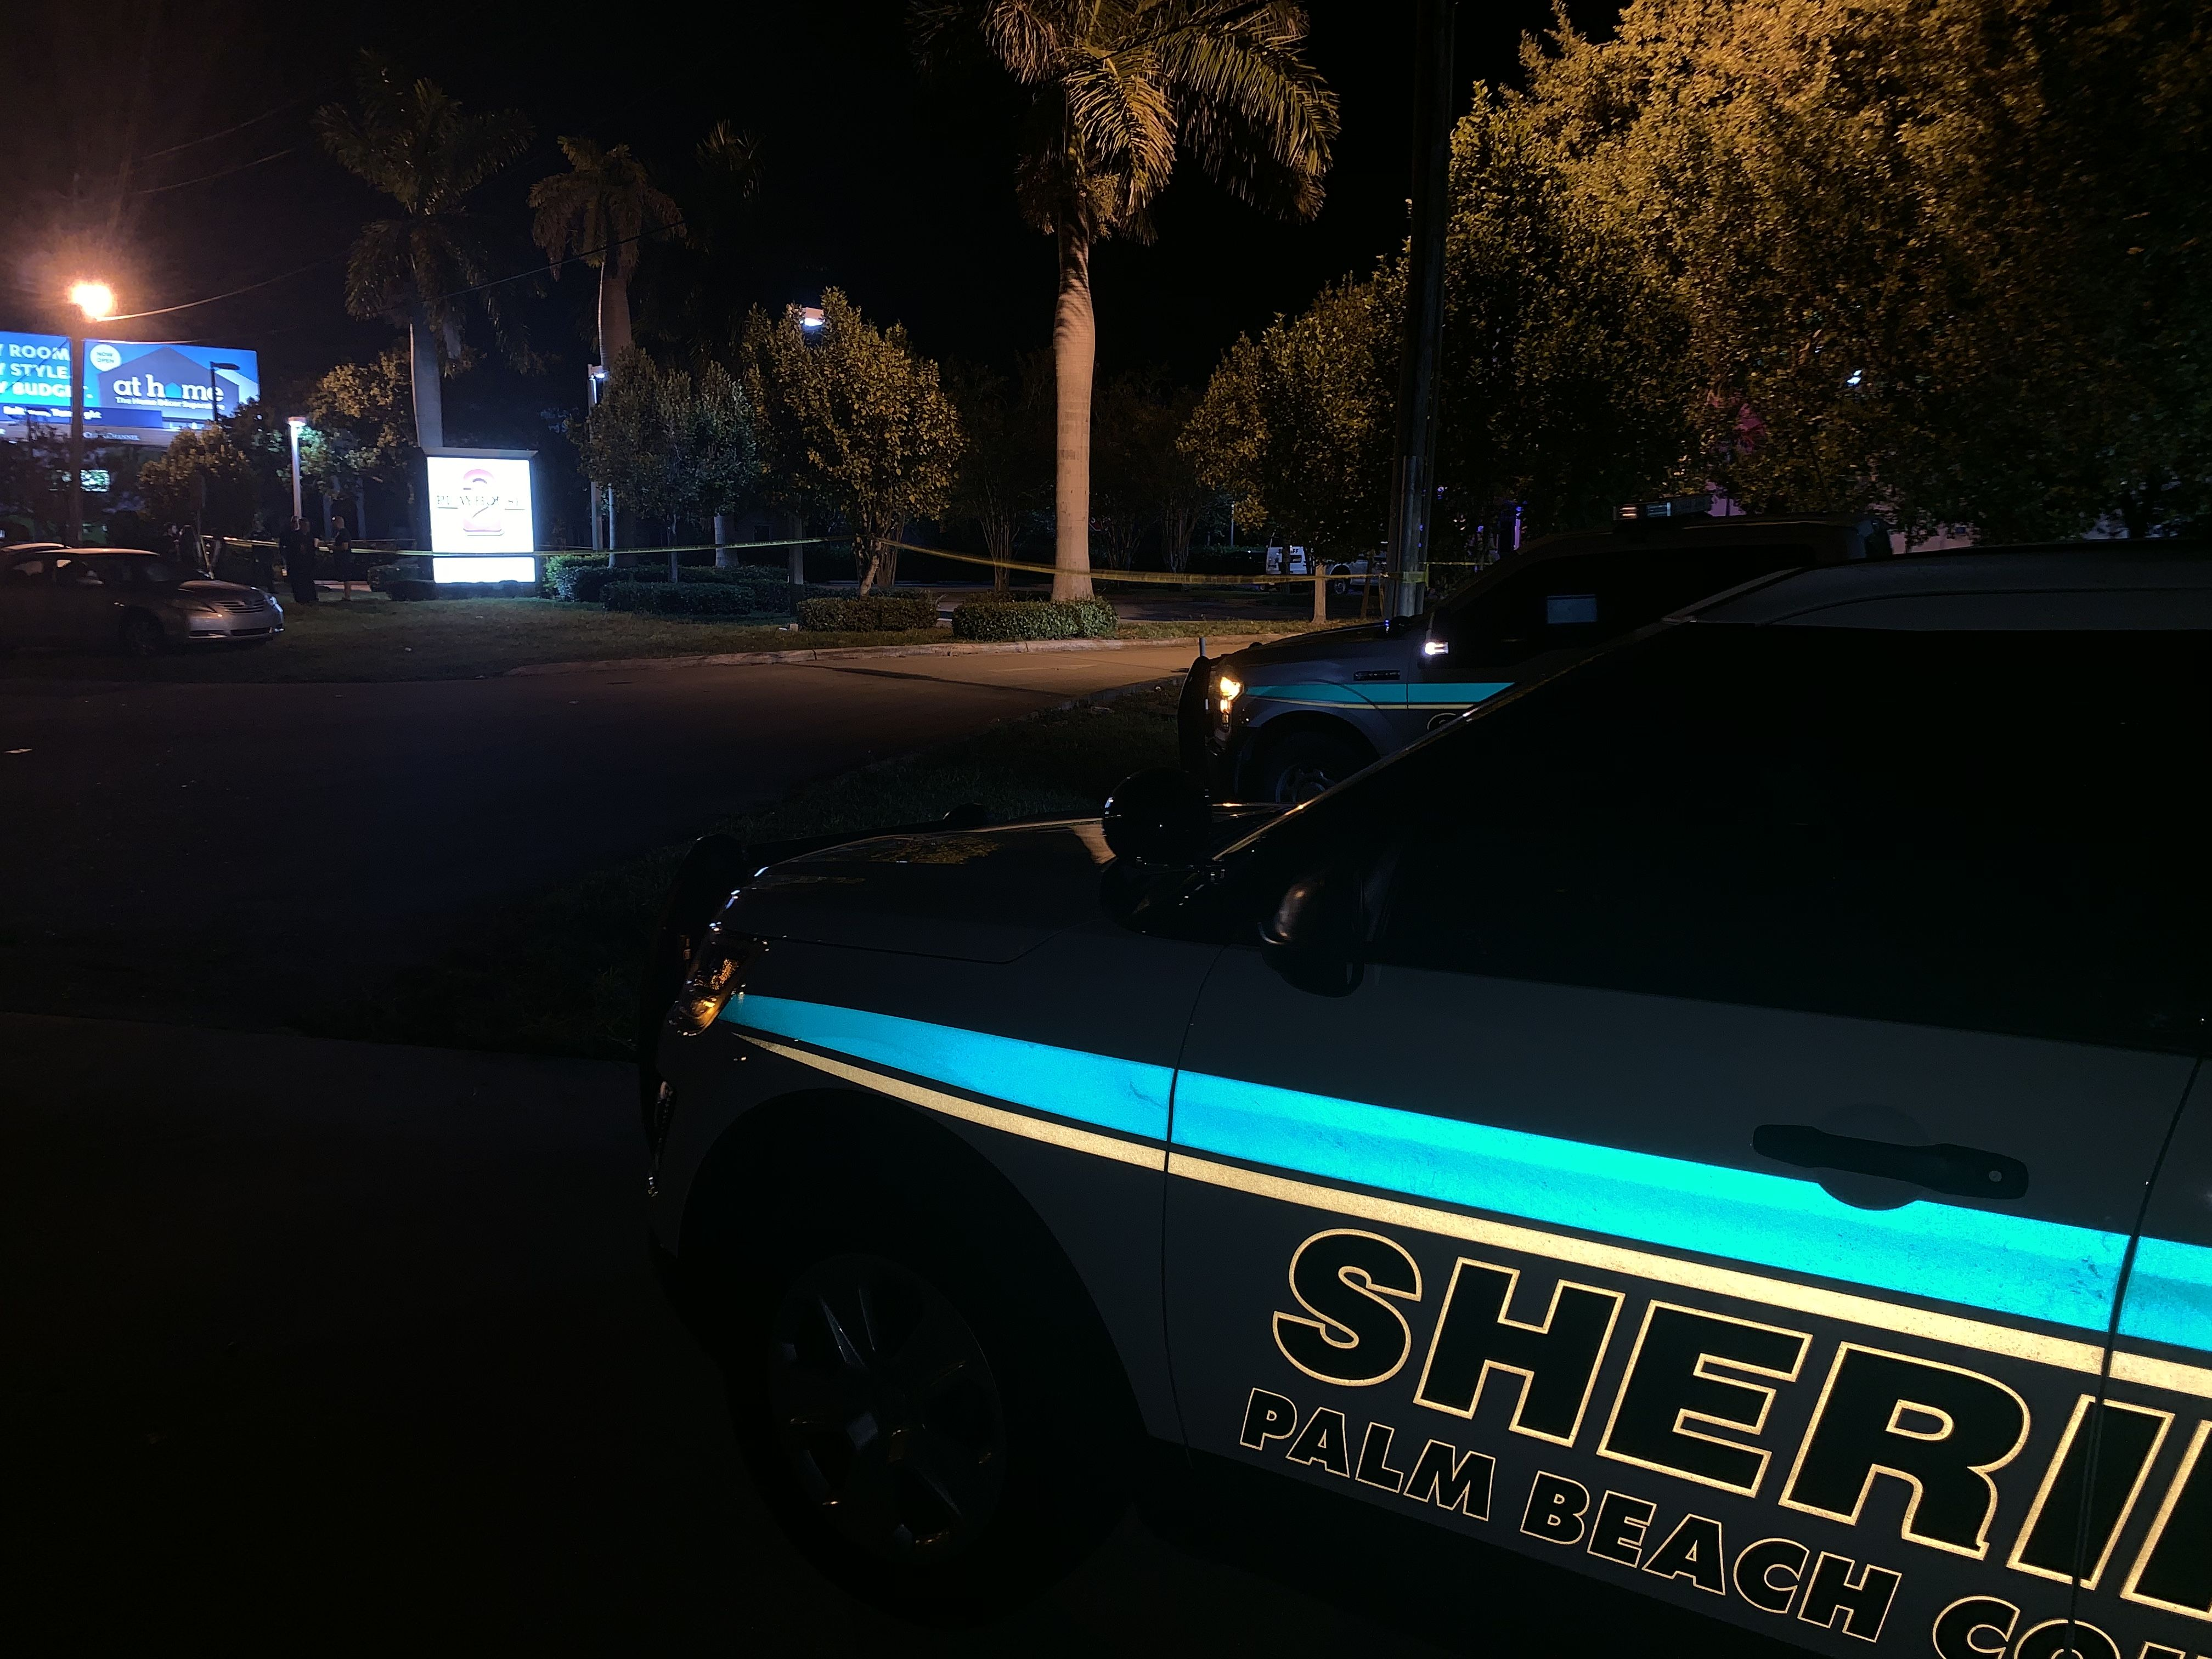 Man shot inside West Palm Beach gentlemen's club